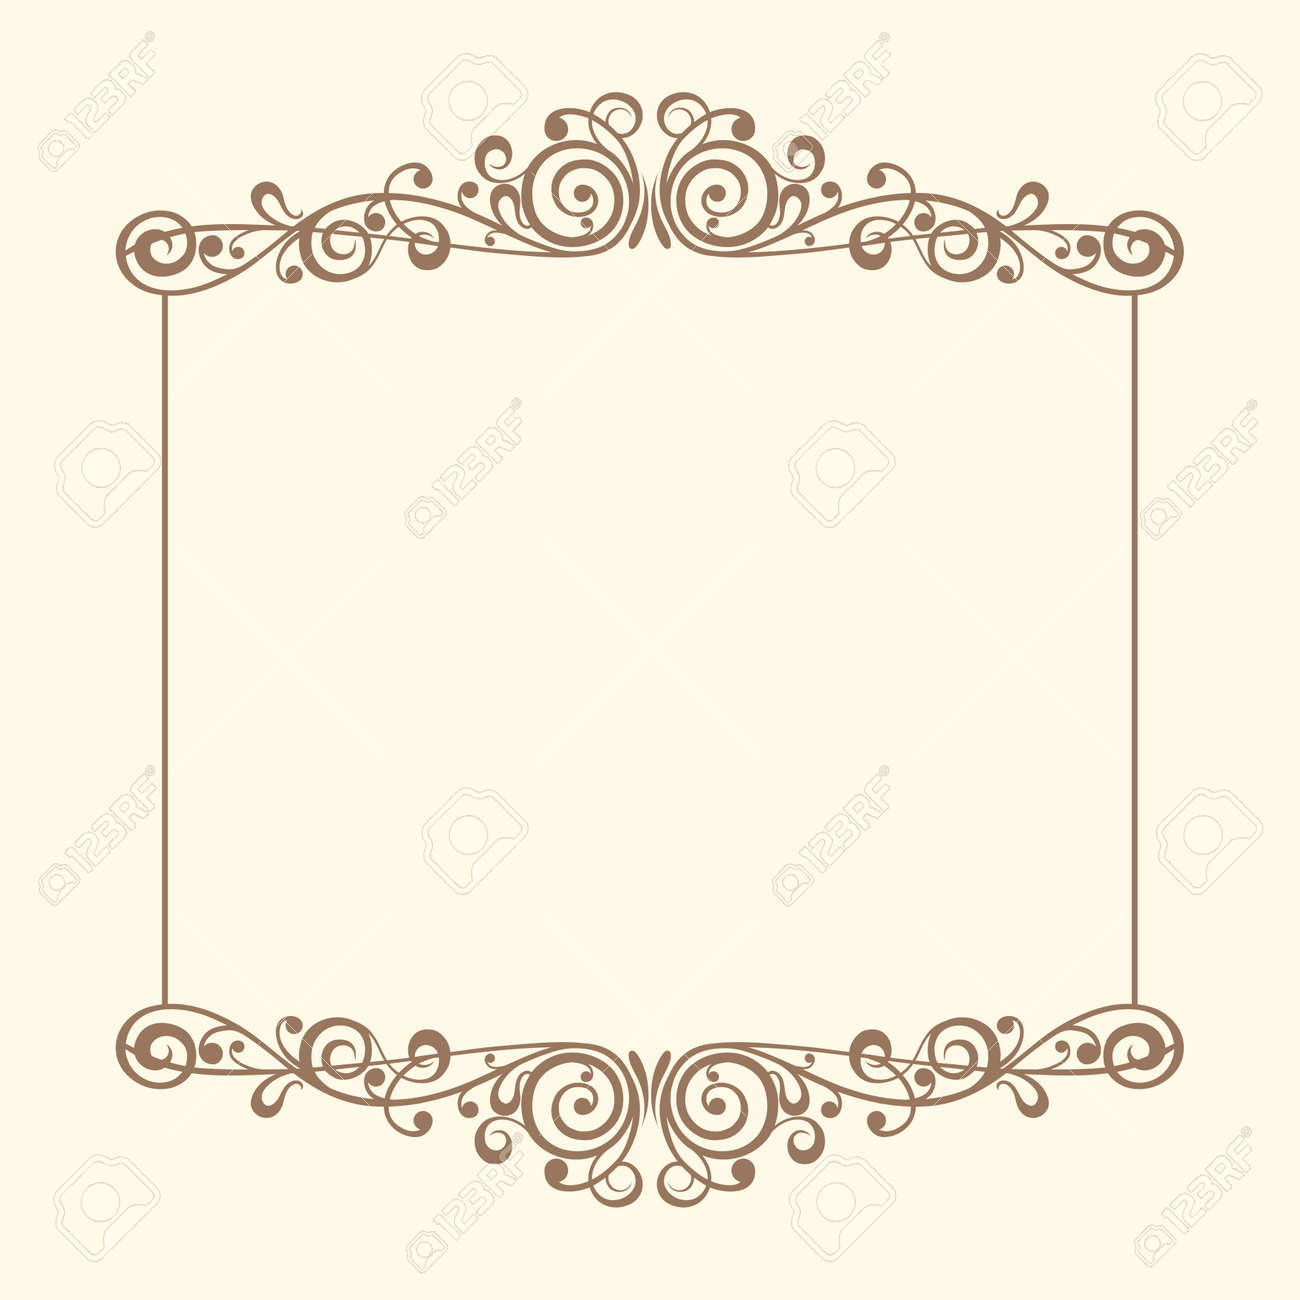 Vintage Frames Vector Royalty Free Cliparts, Vectors, And Stock ...